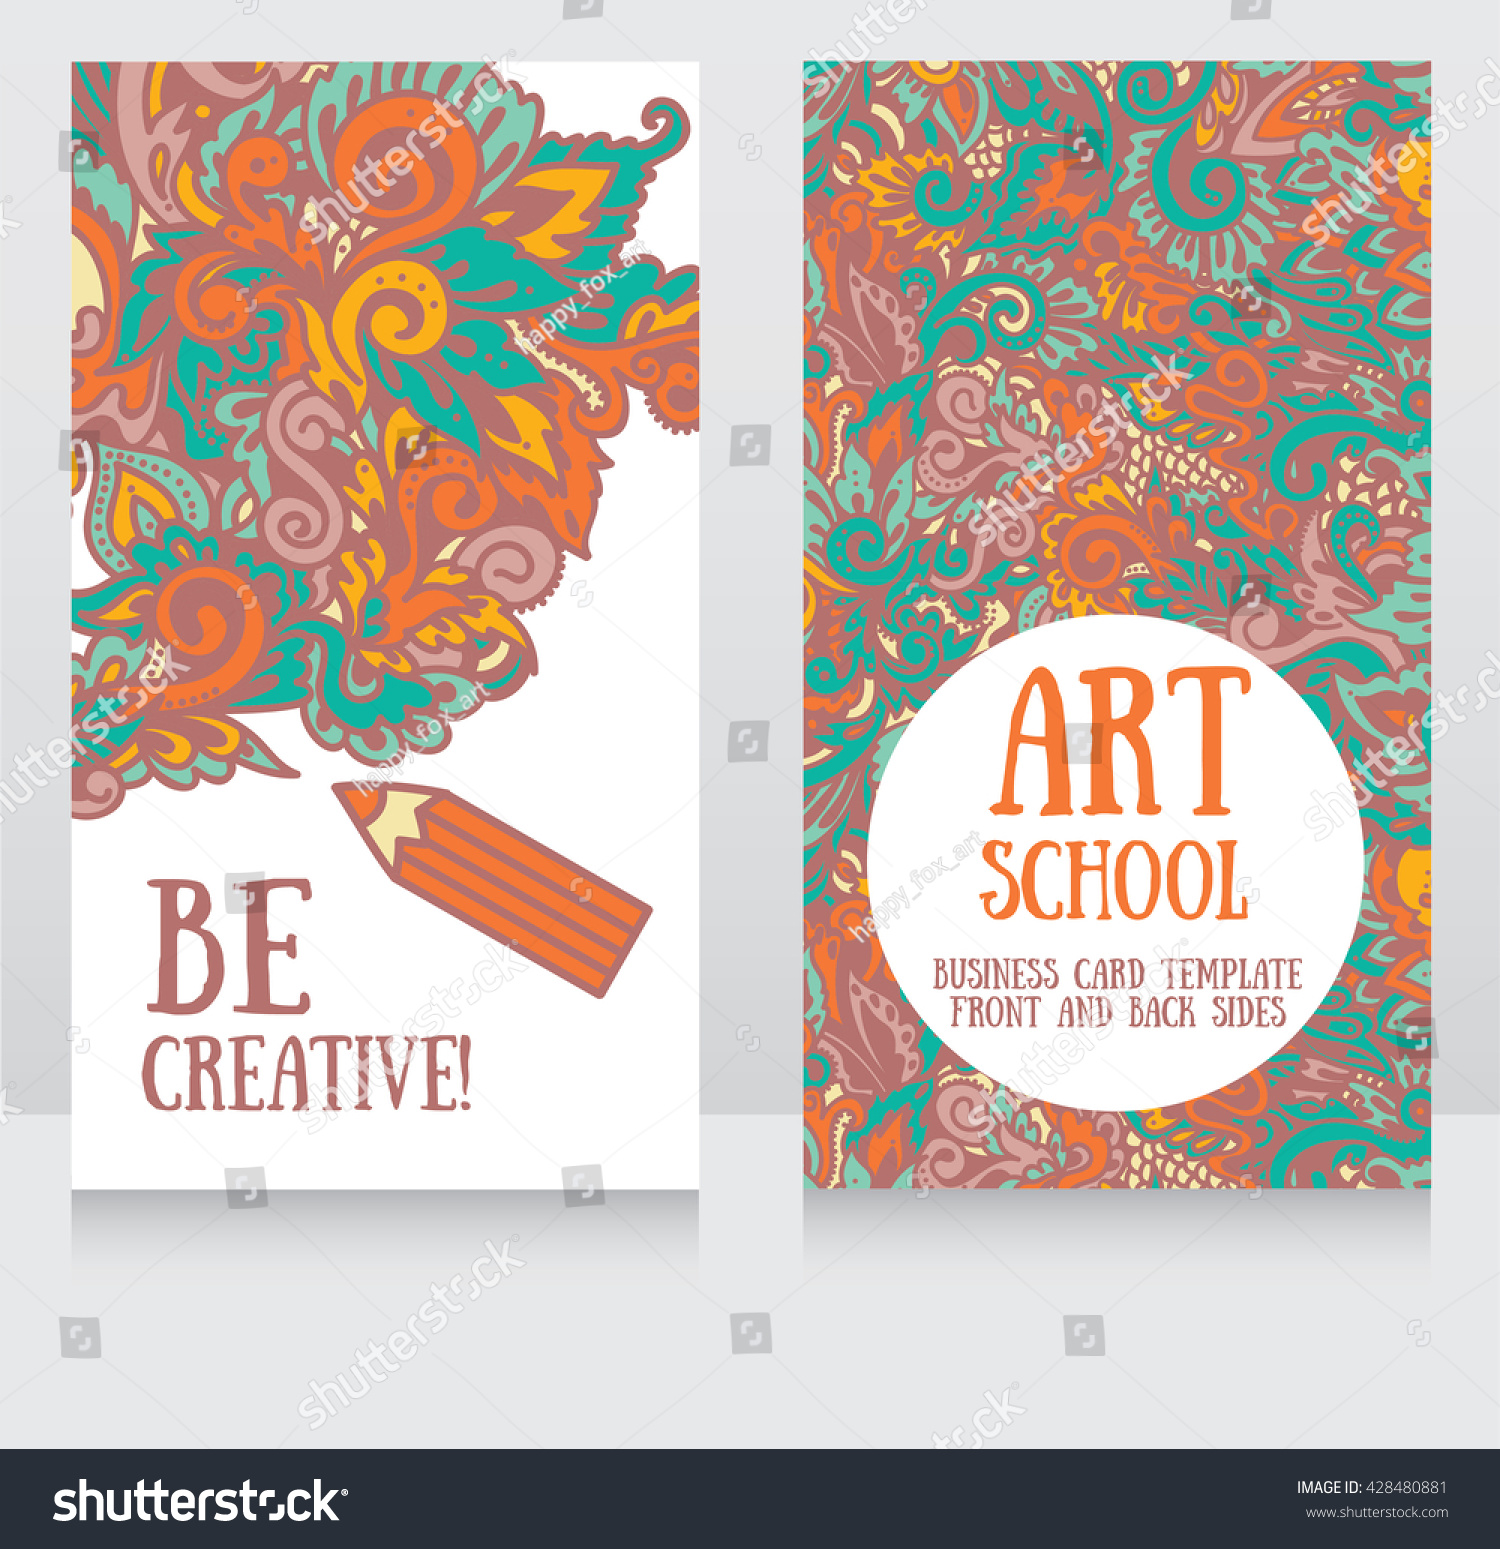 Business Cards Template Art School Can Stock Vector 428480881 ...